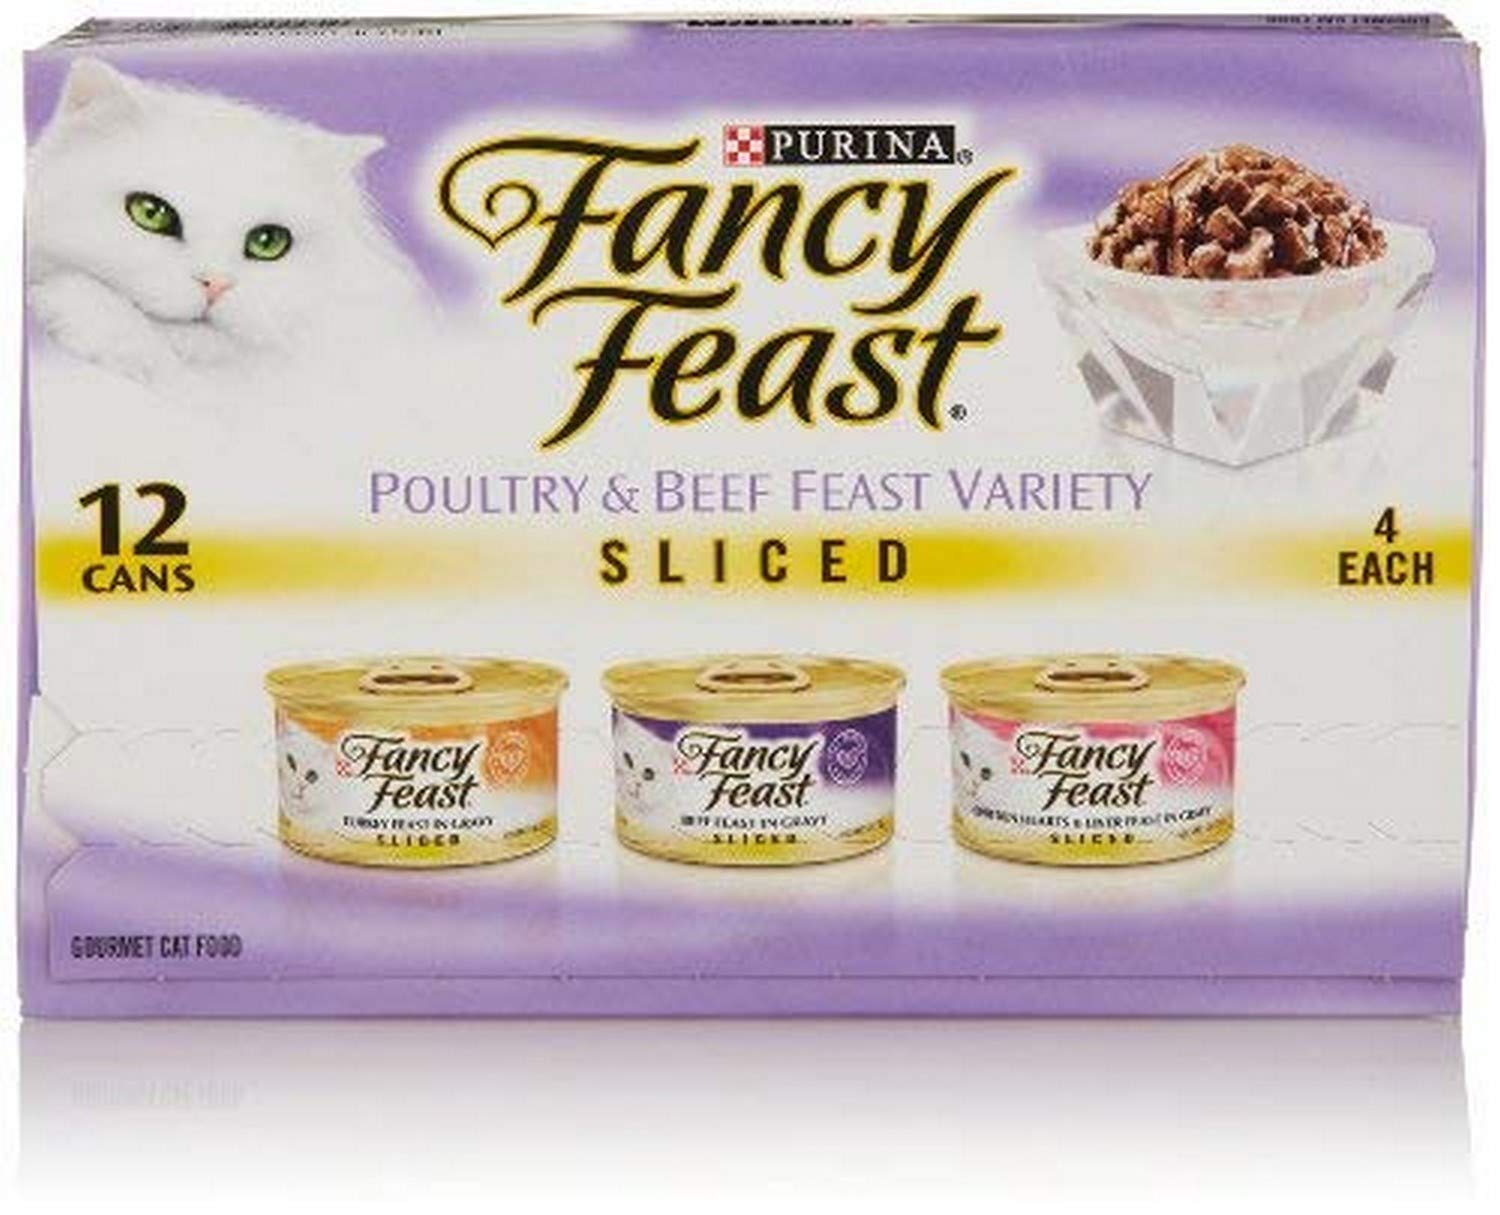 i-Healz Wet Cat Food, Sliced, Poultry & Beef Feast Variety Pack, 3-Ounce Cans, 12 Cans